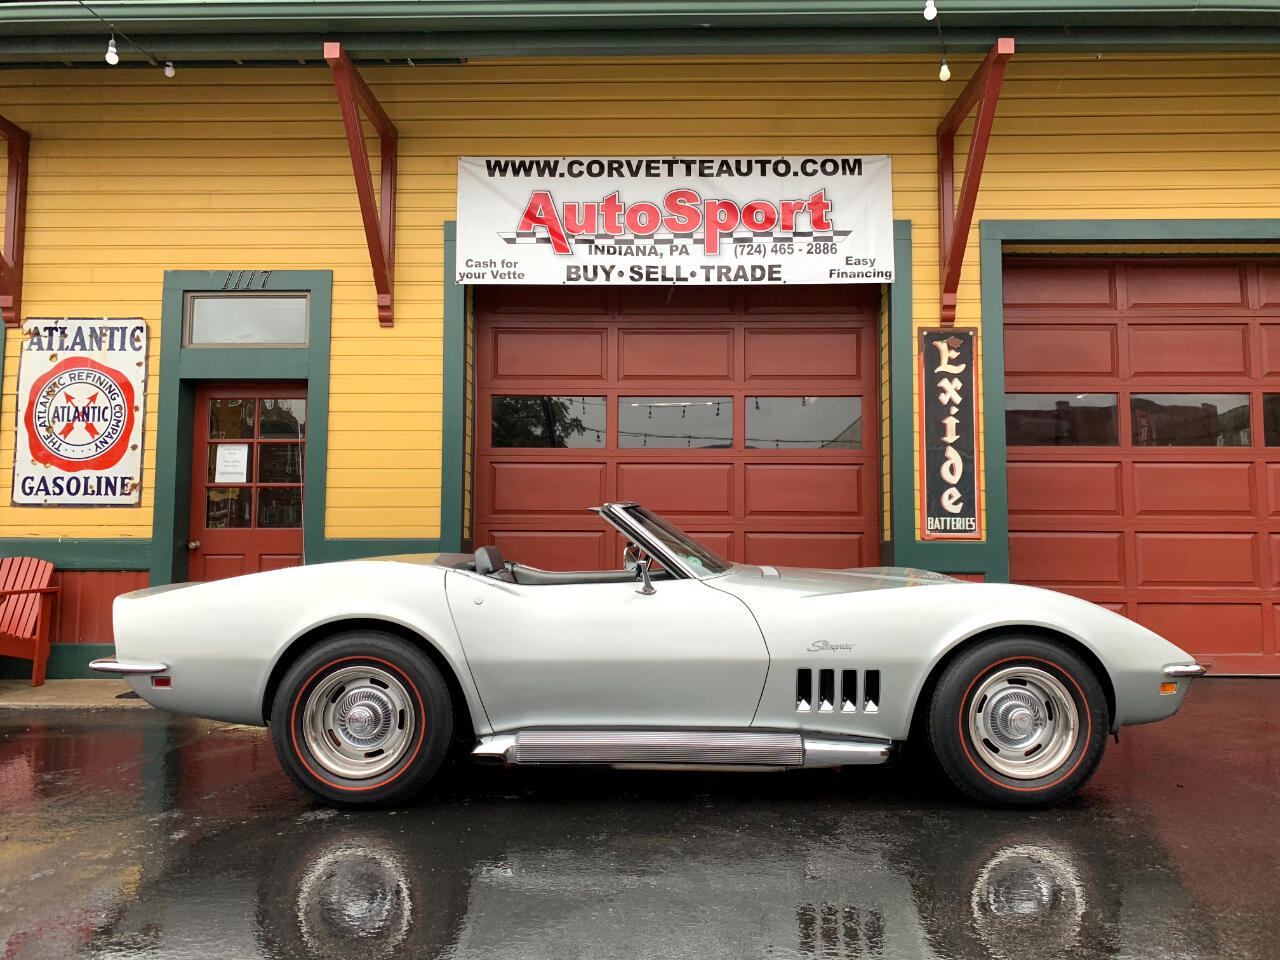 1969 Chevrolet Corvette Cortez Silver Convertible 350hp 4sp Side Exhaust